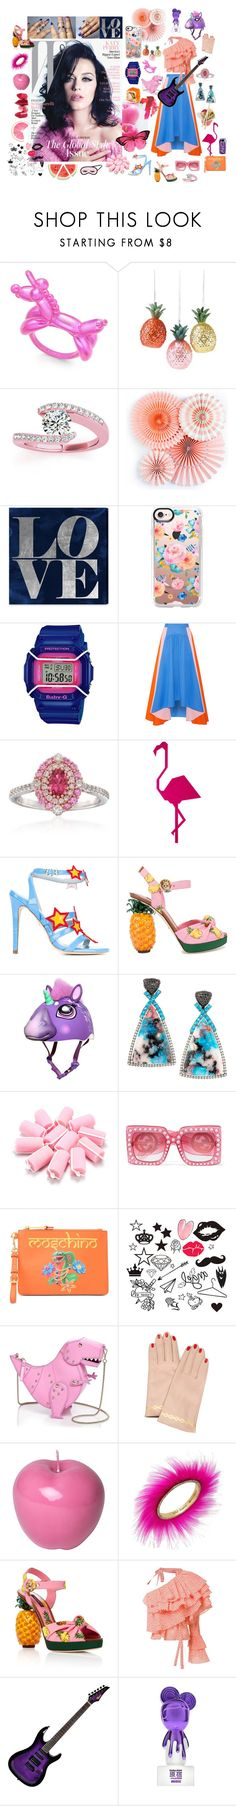 """""""Katy Perry - Fun electric"""" by sarahhughes-net on Polyvore featuring Kate Spade, Allurez, Gipsy, Oliver Gal Artist Co., Casetify, Baby-G, Peter Pilotto, Gregg Ruth, Chiara Ferragni and Dolce&Gabbana"""